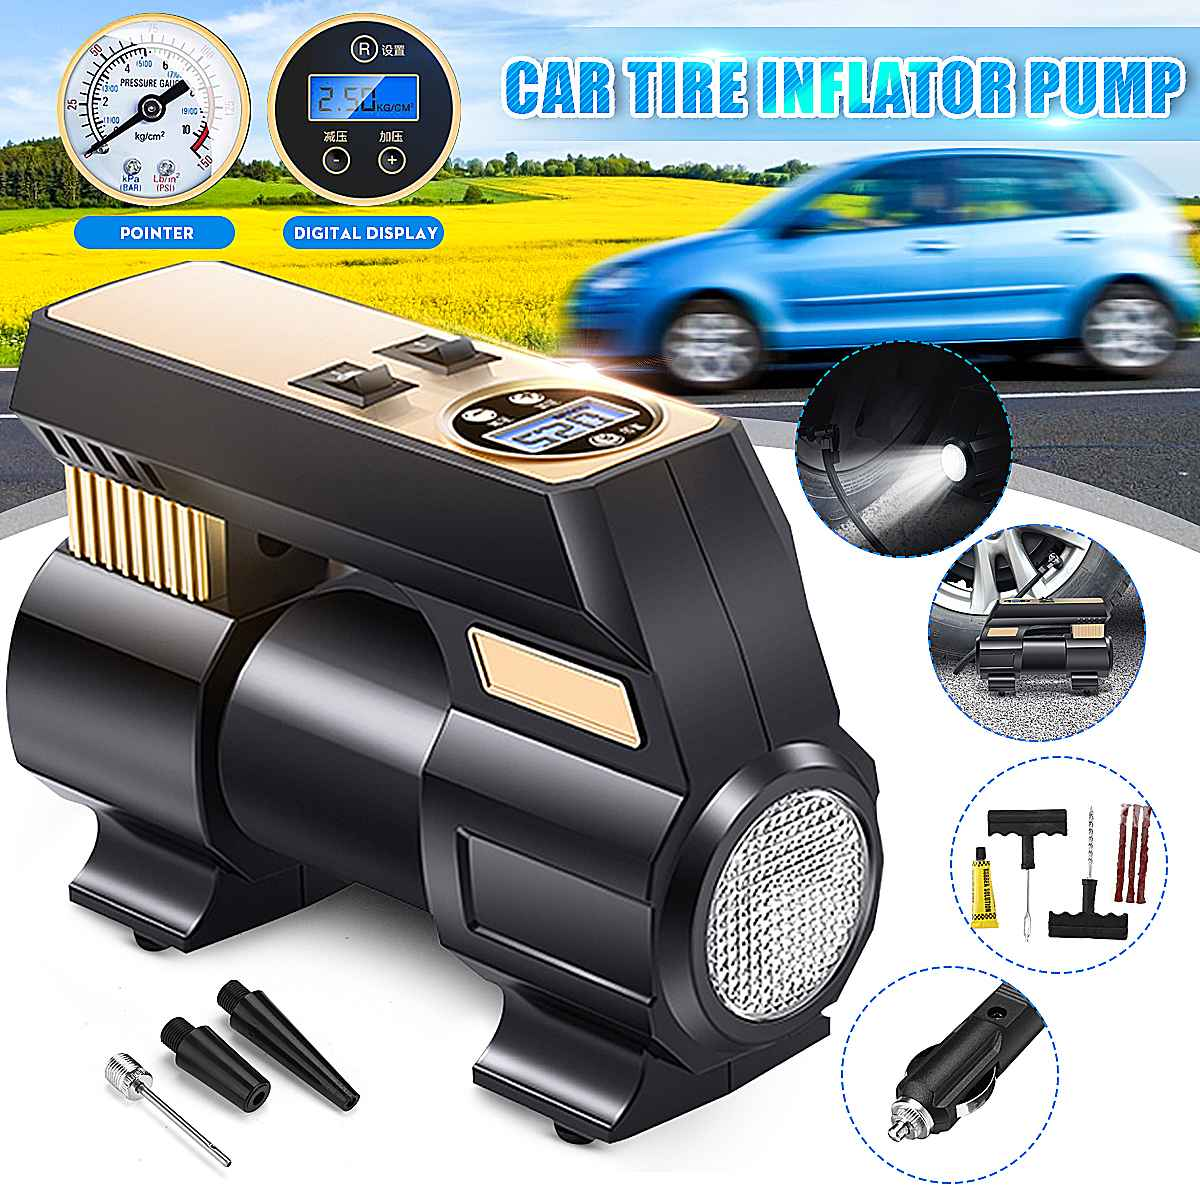 12V 120W Electronic Digital Portable Car Wheel Tire Inflatable Pump Inflator Air Compressor Electric Inflating Machine Nozzle